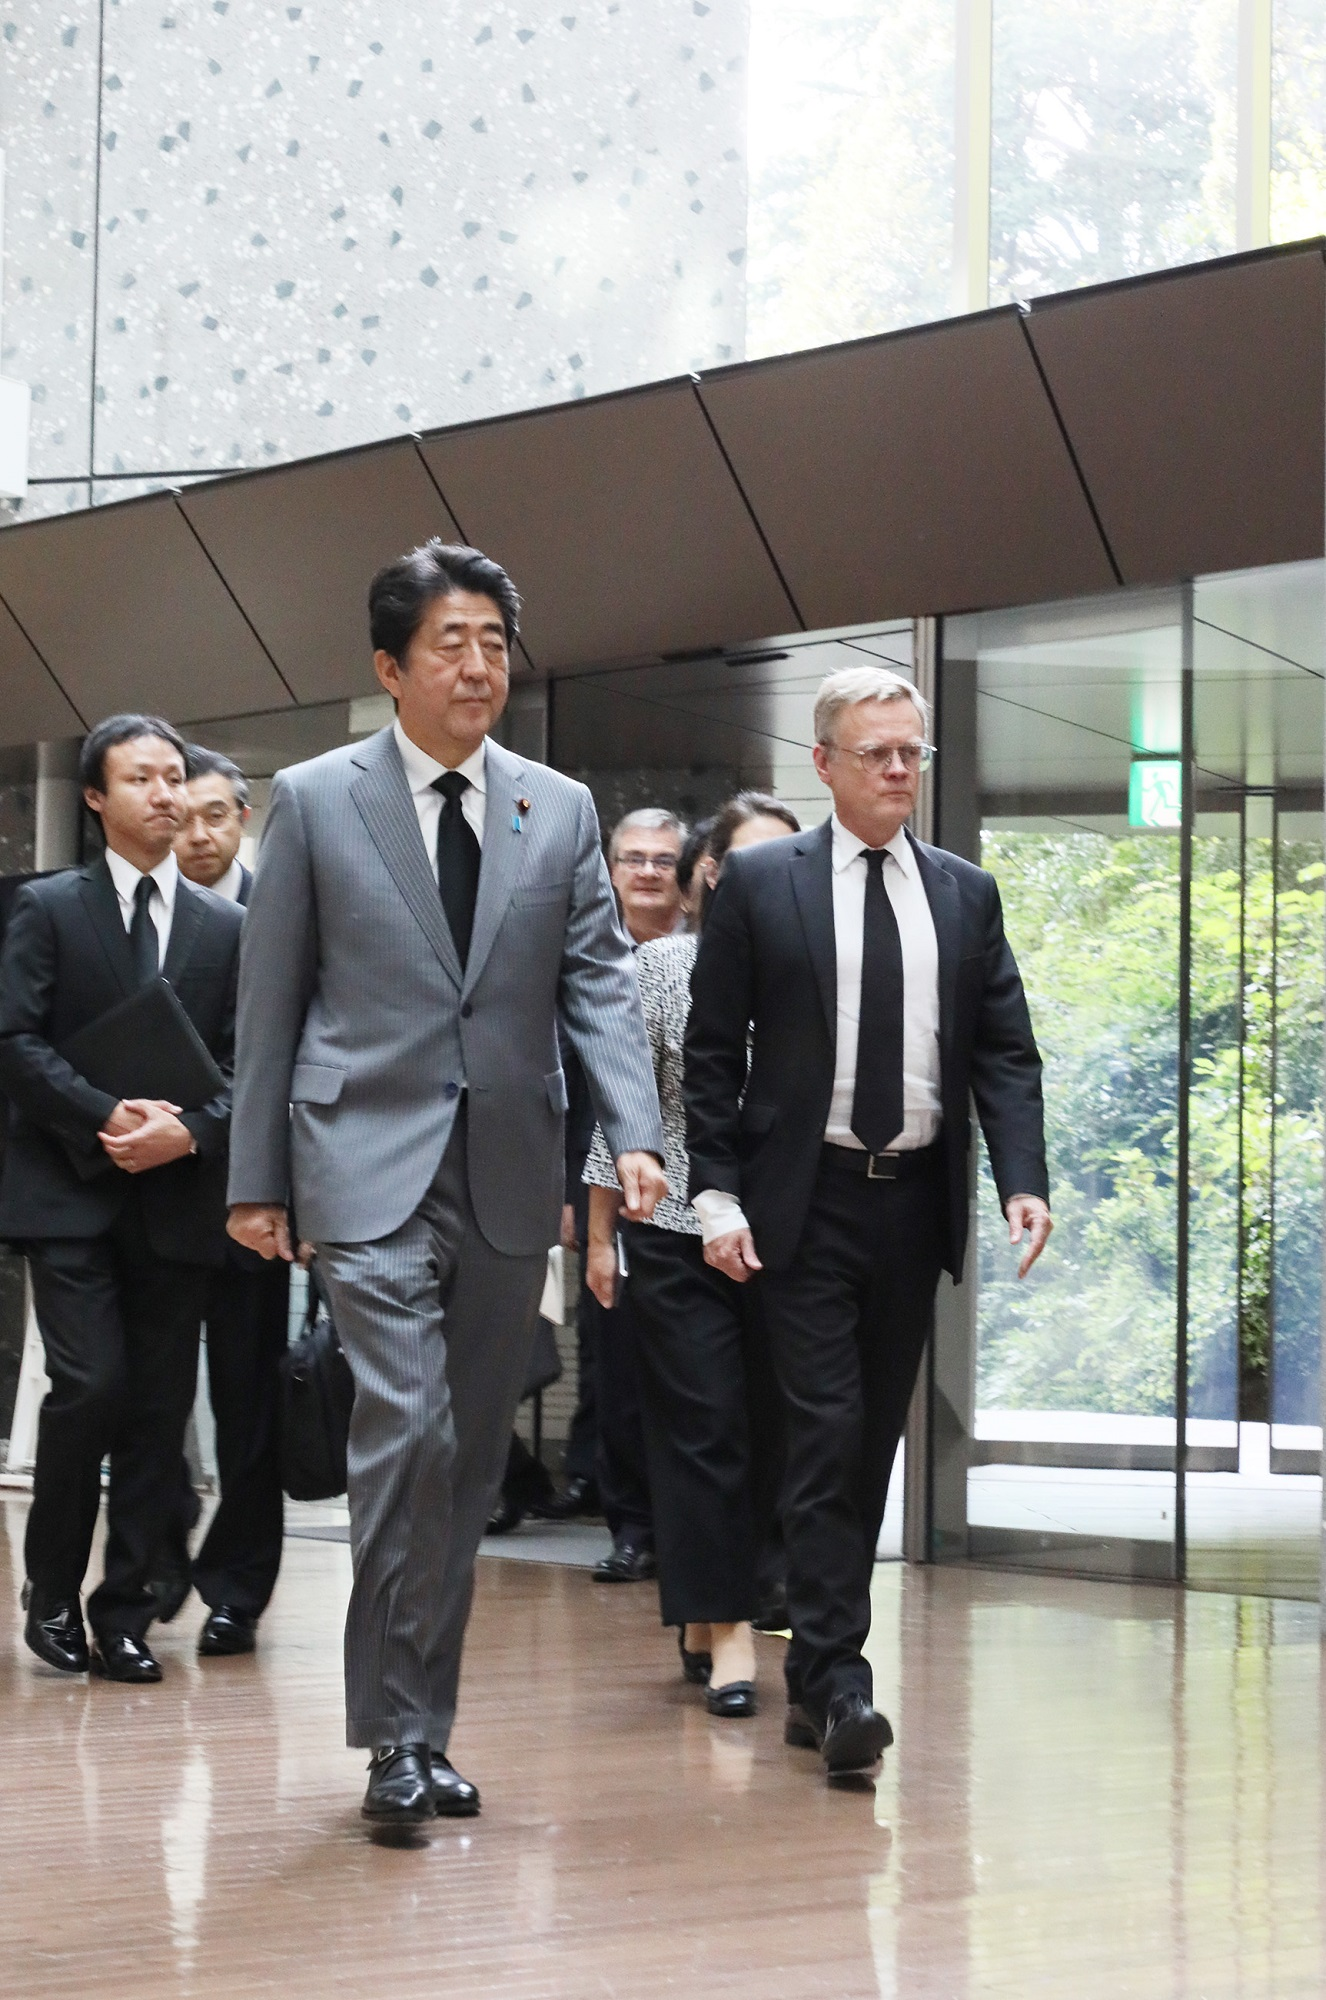 Photograph of the Prime Minister arriving to offer his condolences (1)